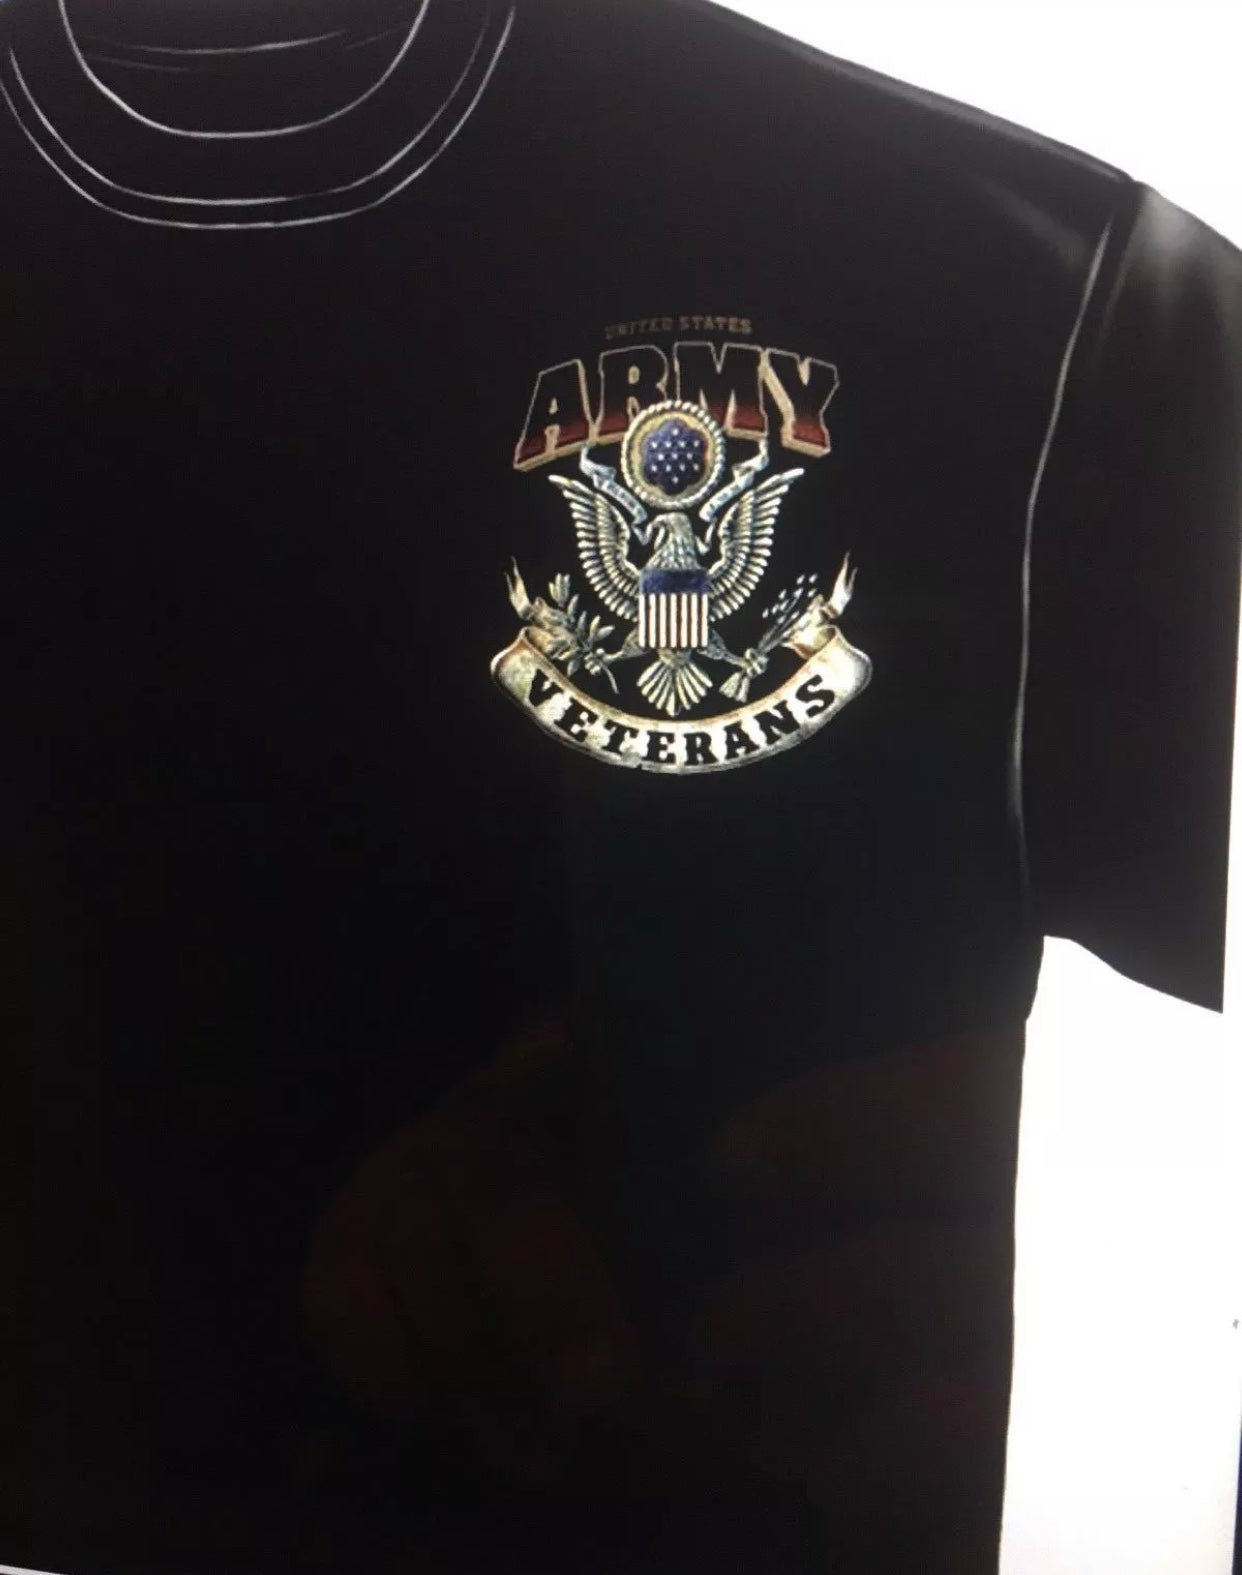 Army Proud To Have Served Veteran T- Shirt - The Wall Kids, Inc.